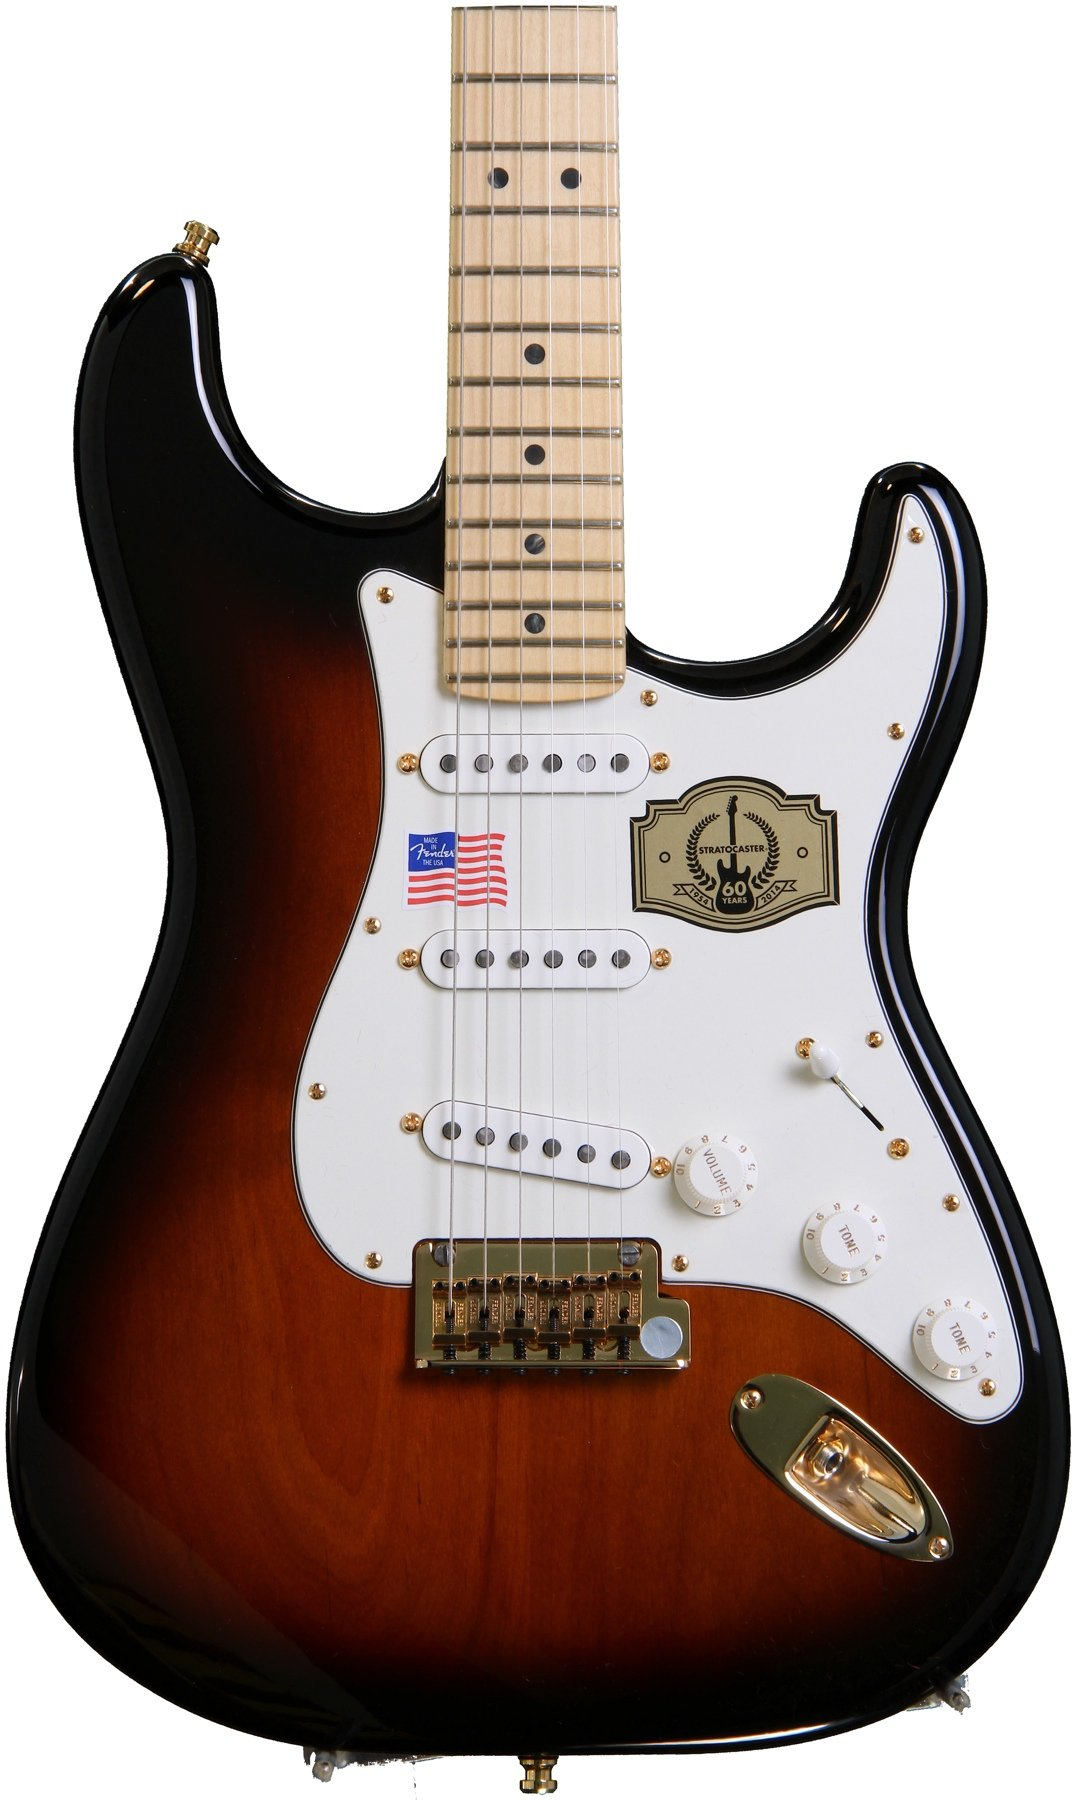 Fender 60th Anniv Comm Strat 2 Color Sunburst Sweetwater Fenderr Forums O View Topic Tone Control For Every Pickup Image 1